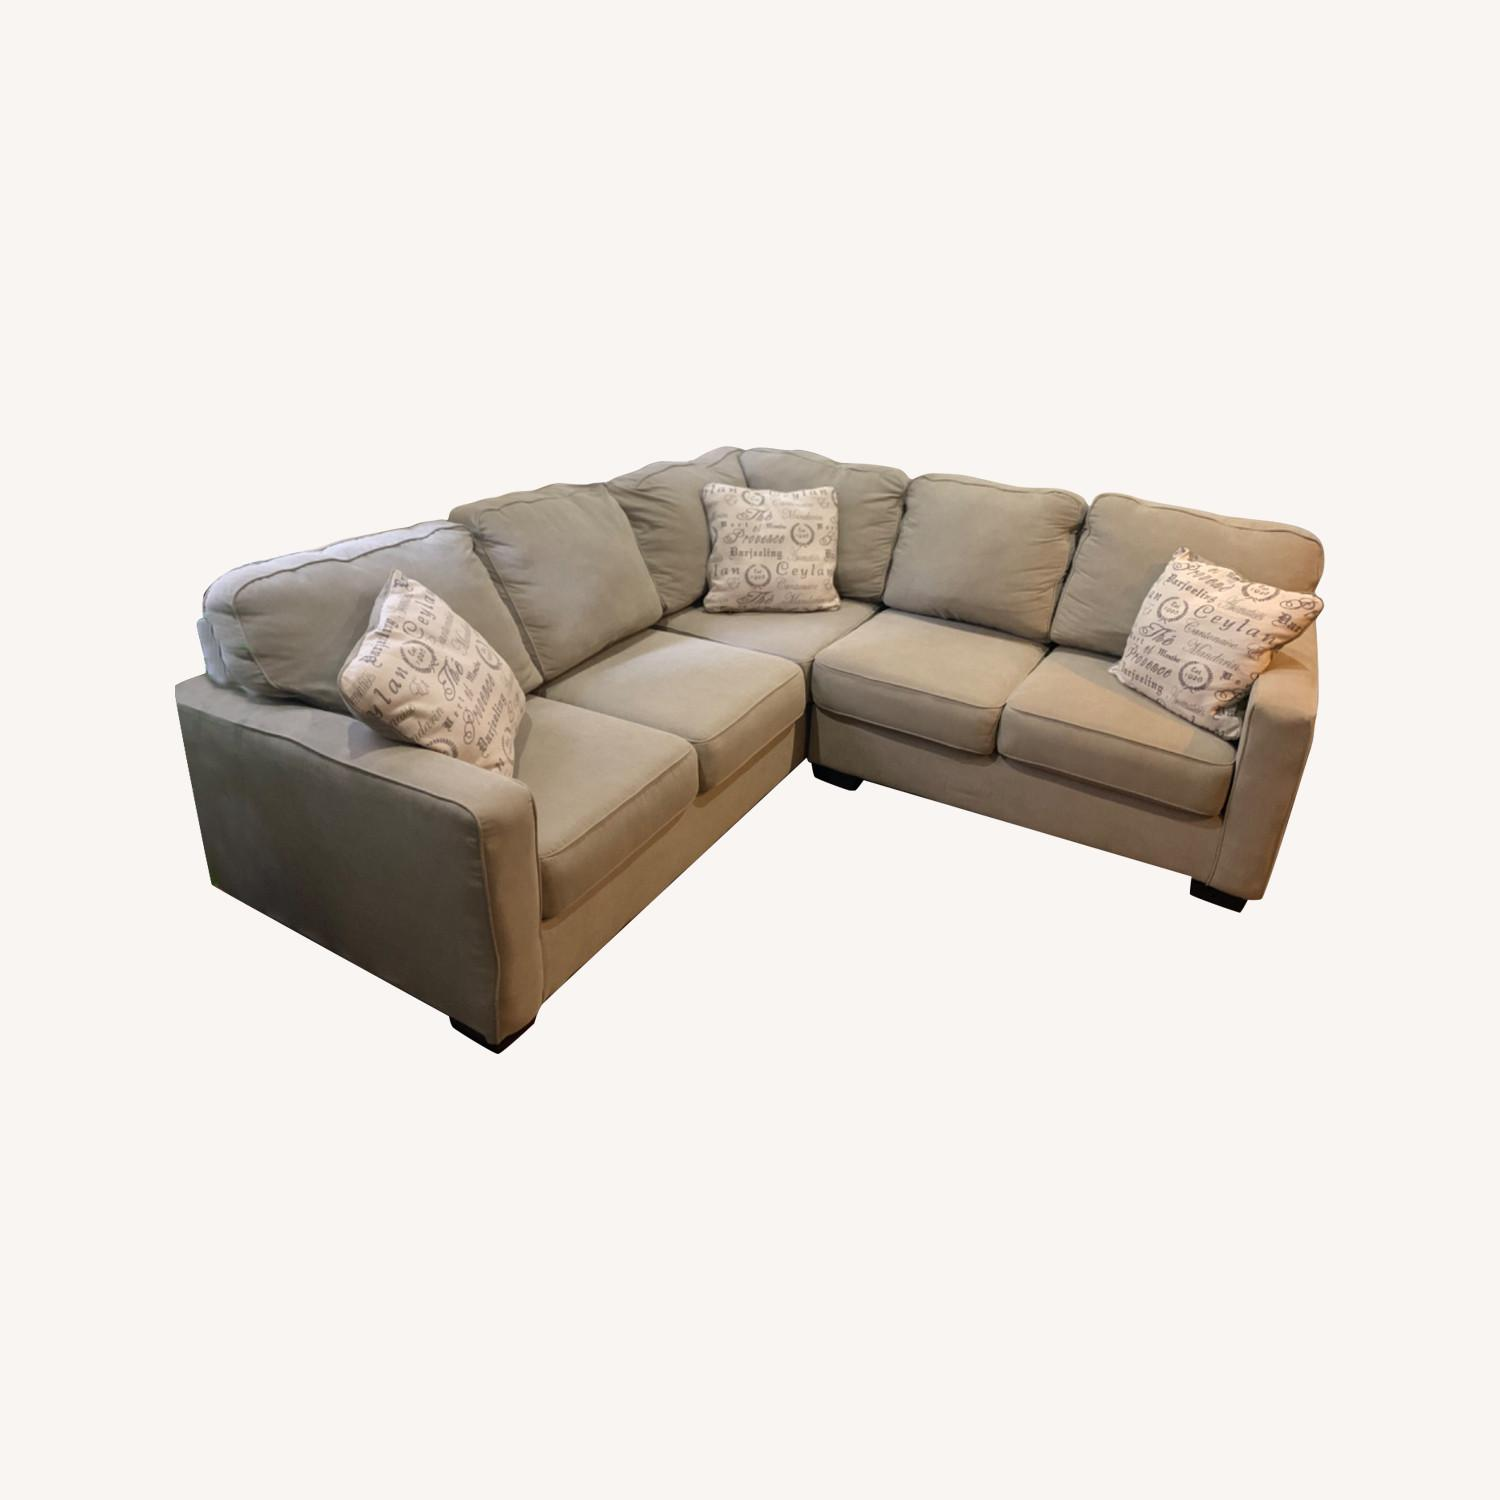 Ashley Furniture Big Comfy Couch - image-0